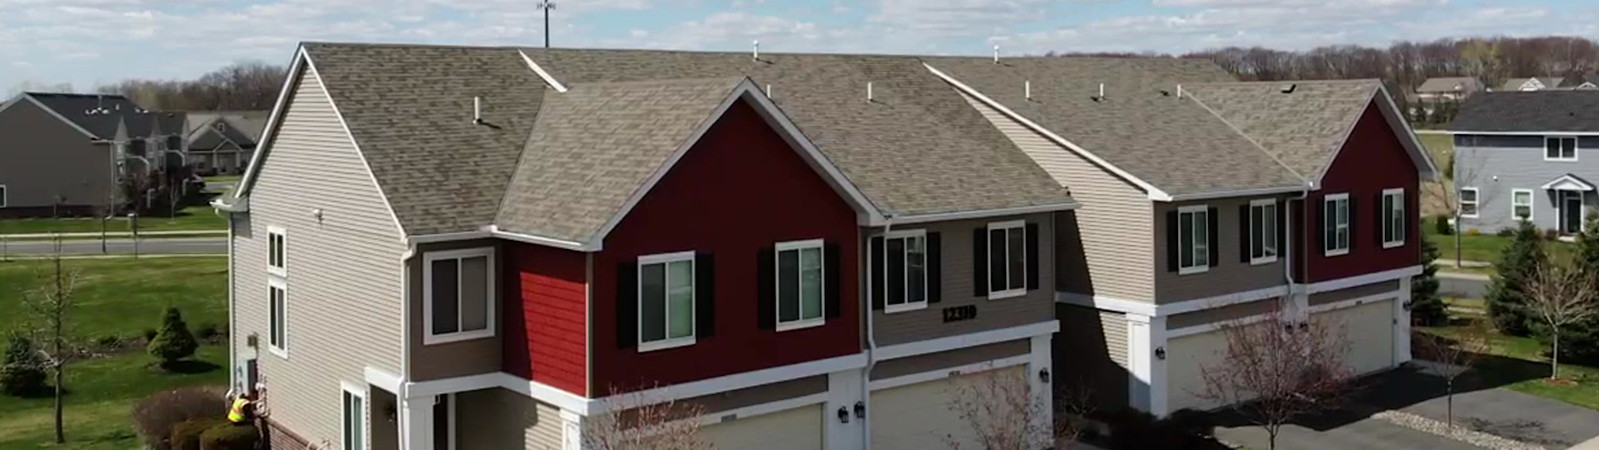 Commercial-Shingle-roof